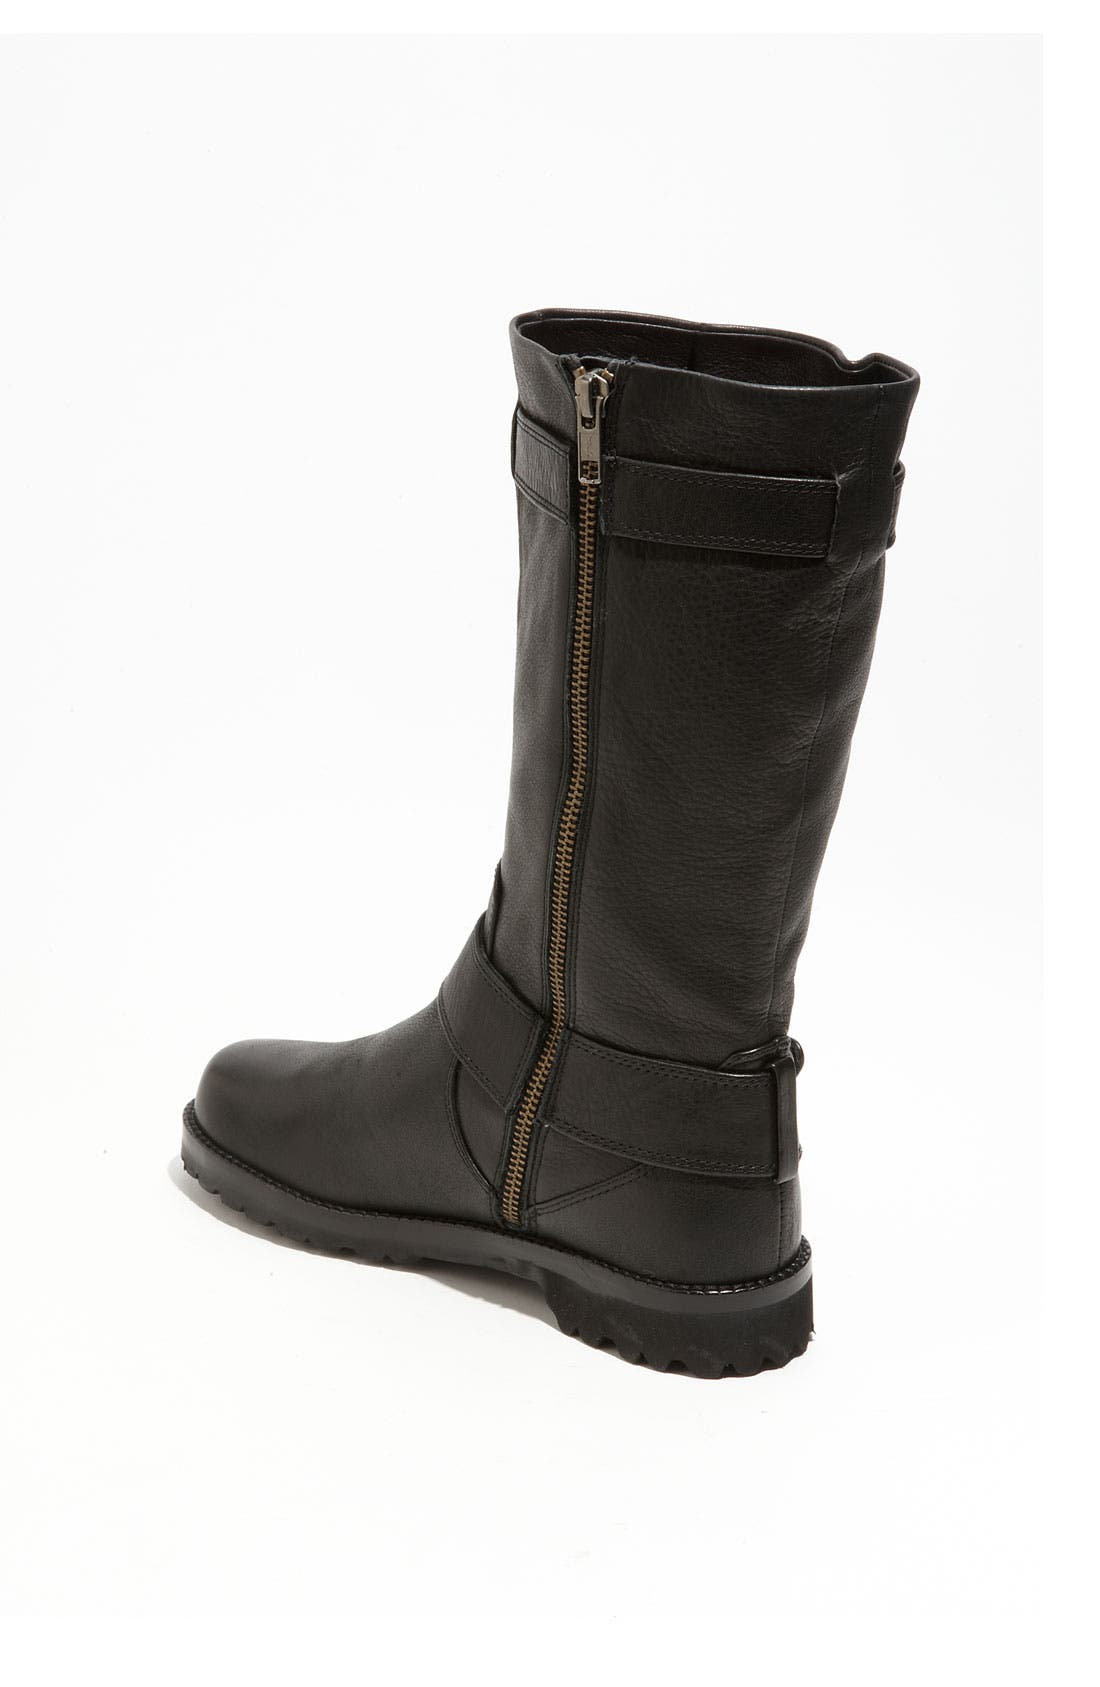 GENTLE SOULS BY KENNETH COLE, 'Buckled Up' Boot, Alternate thumbnail 10, color, BLACK